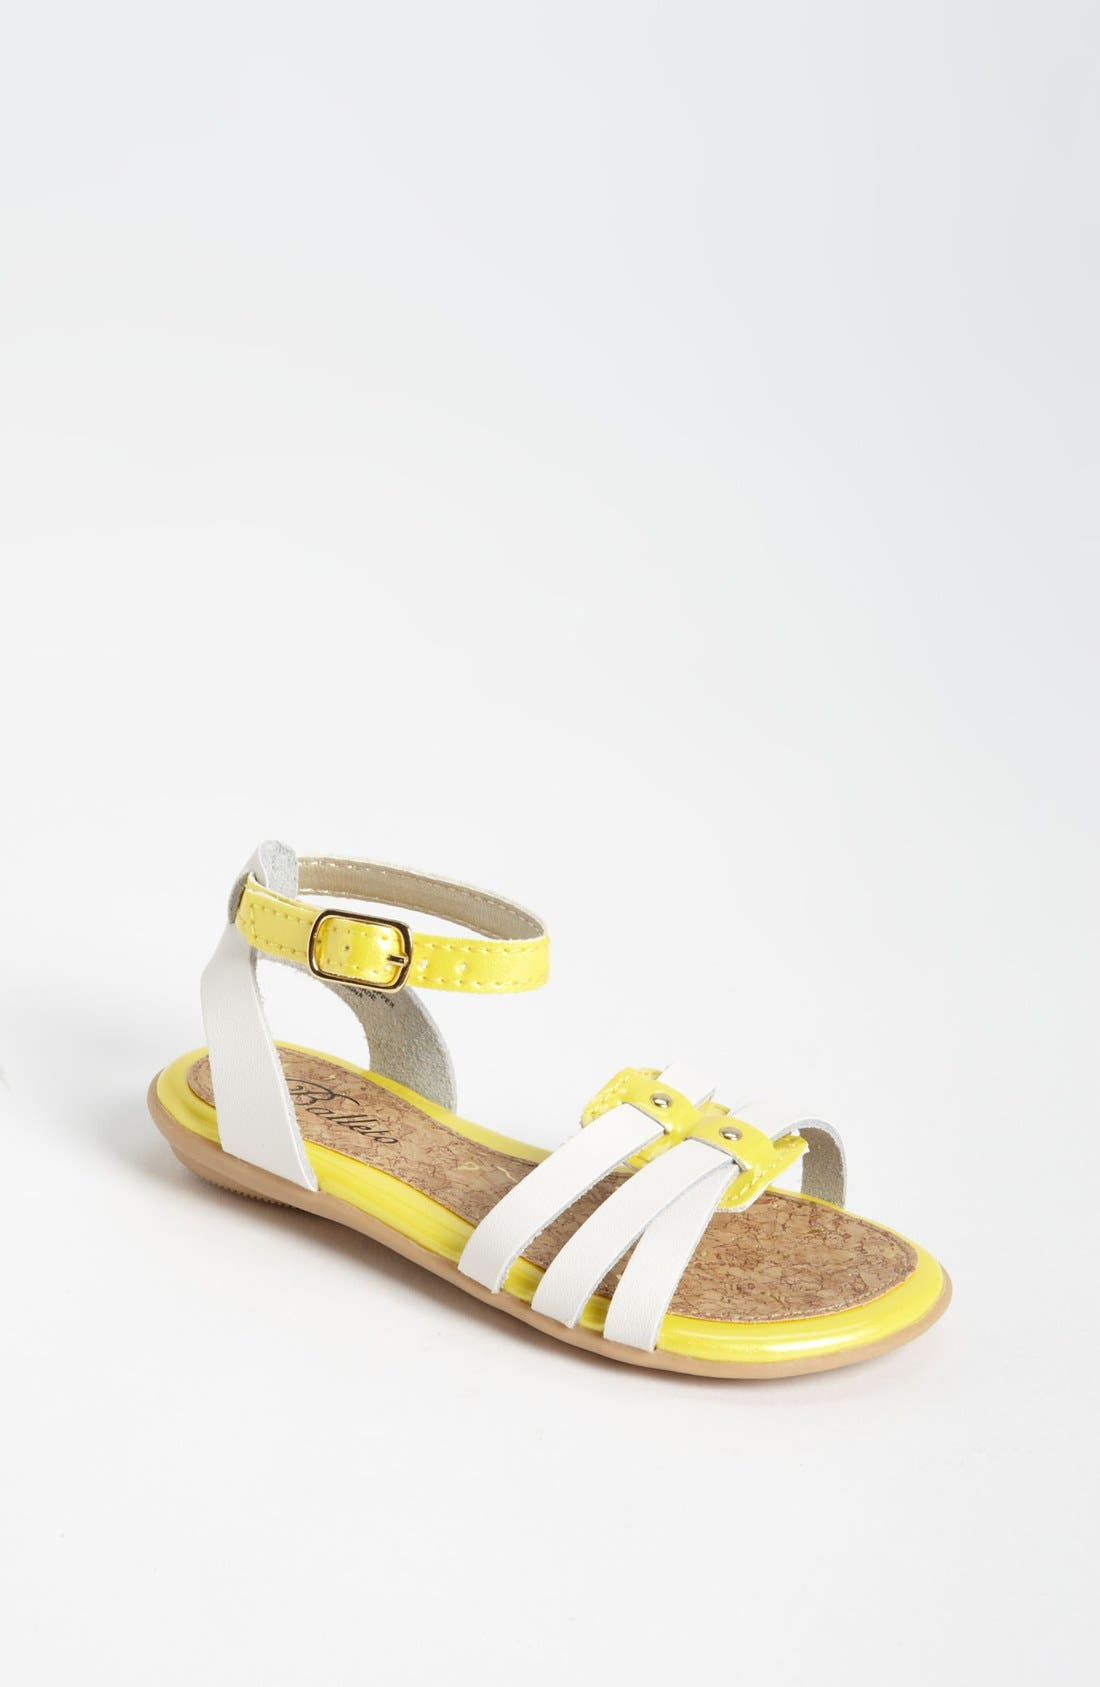 Alternate Image 1 Selected - Balleto 'Olivia' Sandal (Walker, Toddler, Little Kid & Big Kid)